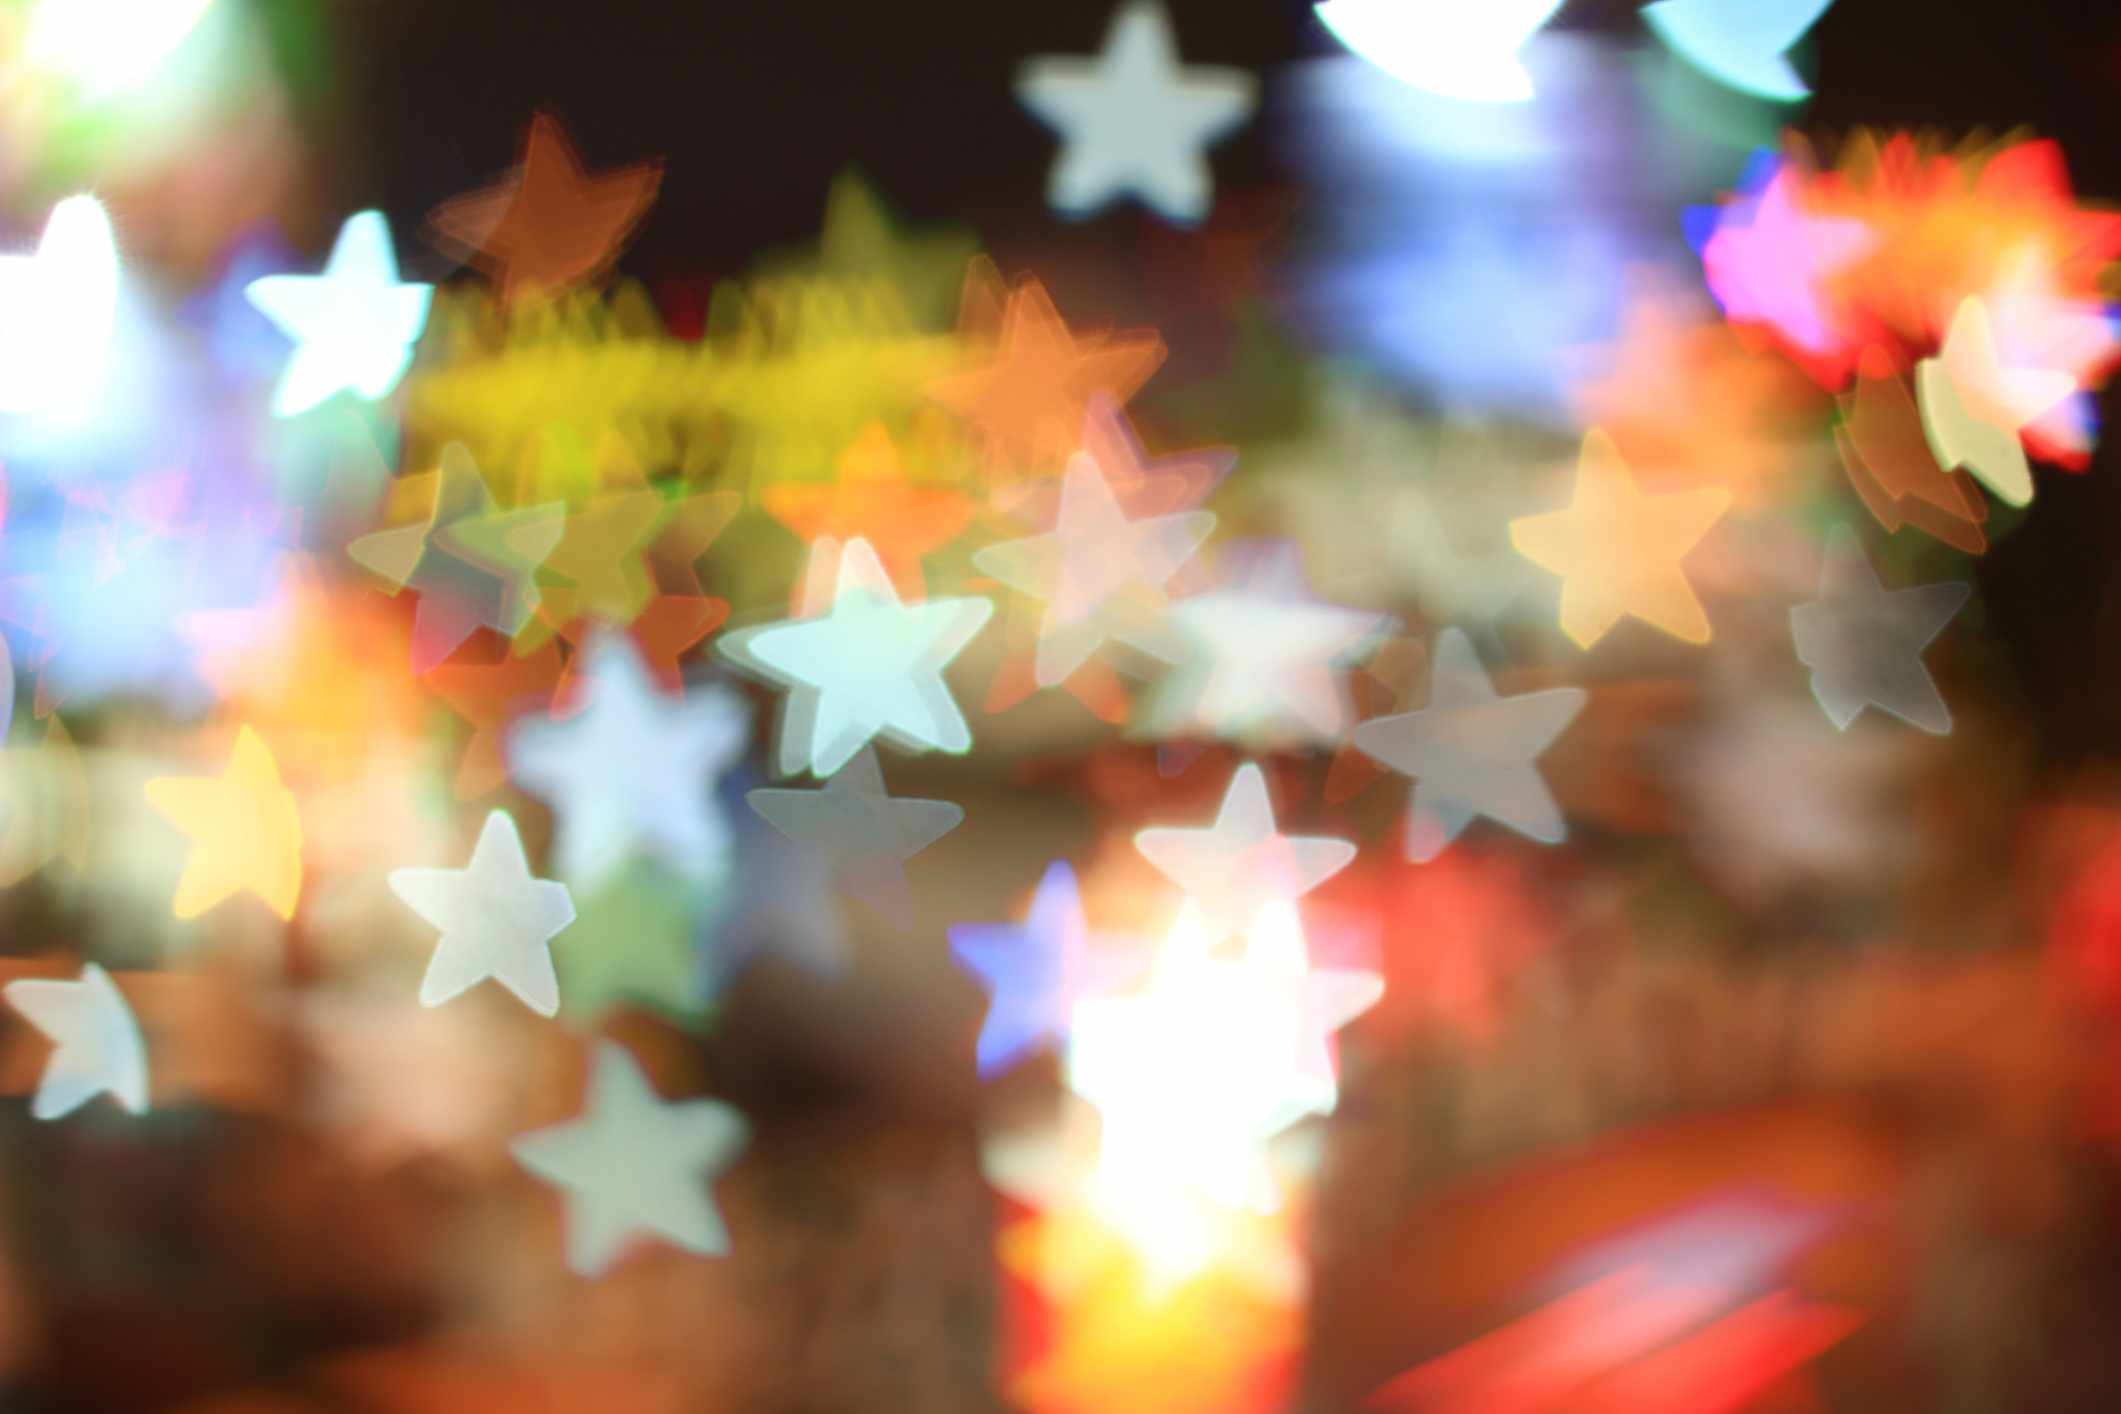 Why do you see stars if you bump your head? © Getty Images